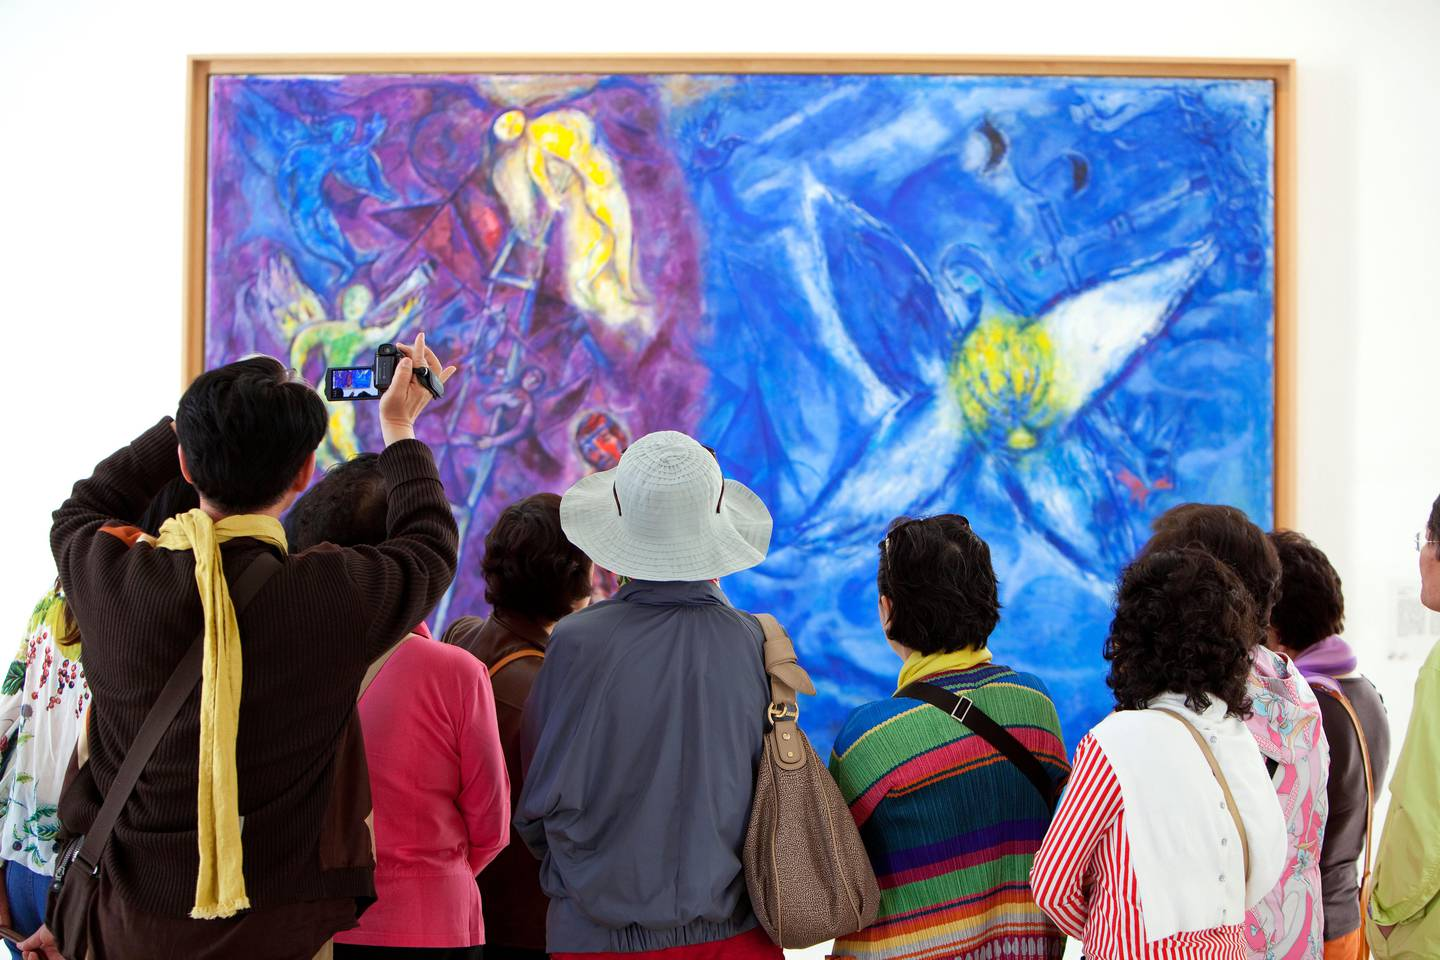 CN8AD9 France, Alpes Maritimes, Nice, Musee National Marc Chagall, the first national museum dedicated to an artist to honor his work. Hemis / Alamy Stock Photo